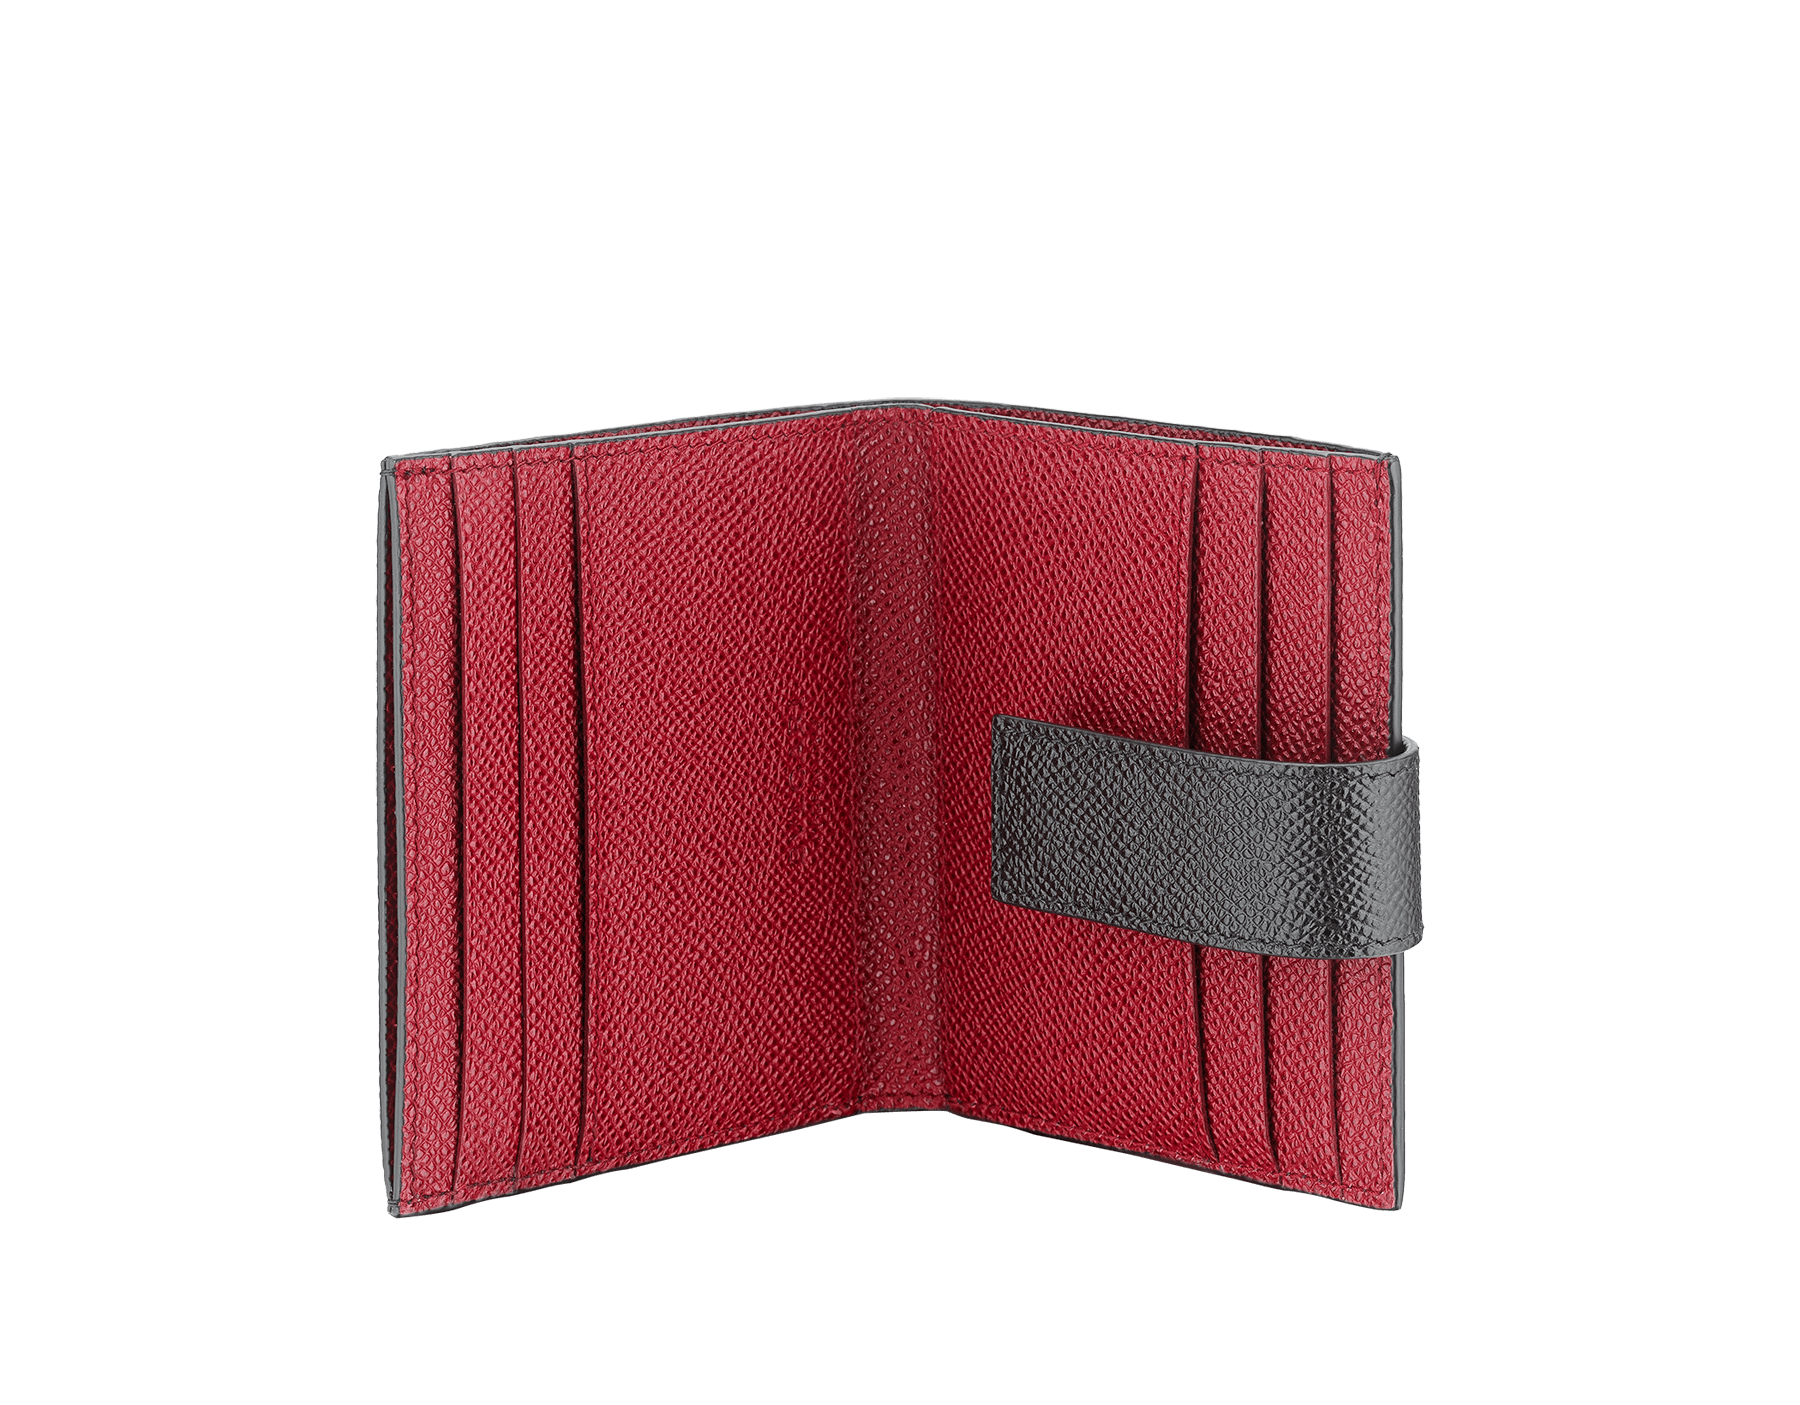 """BVLGARI BVLGARI"" card holder in black and ruby red grain calf leather. Iconic logo decoration in palladium plated brass. 290070 image 2"